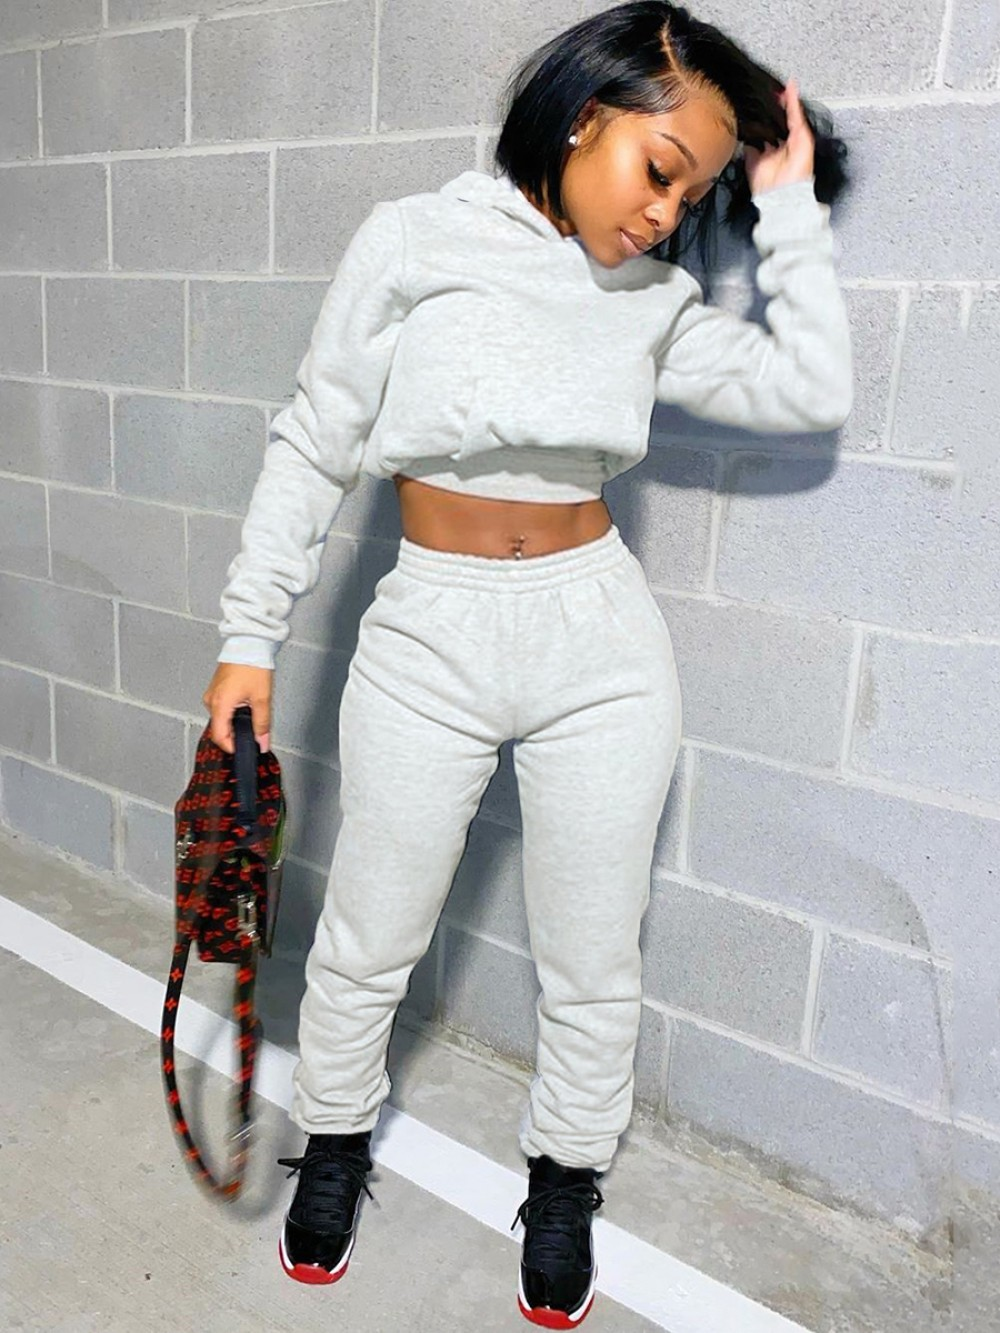 Gray Solid Color Hooded Collar 2-Piece Outfits Casual Women Clothes